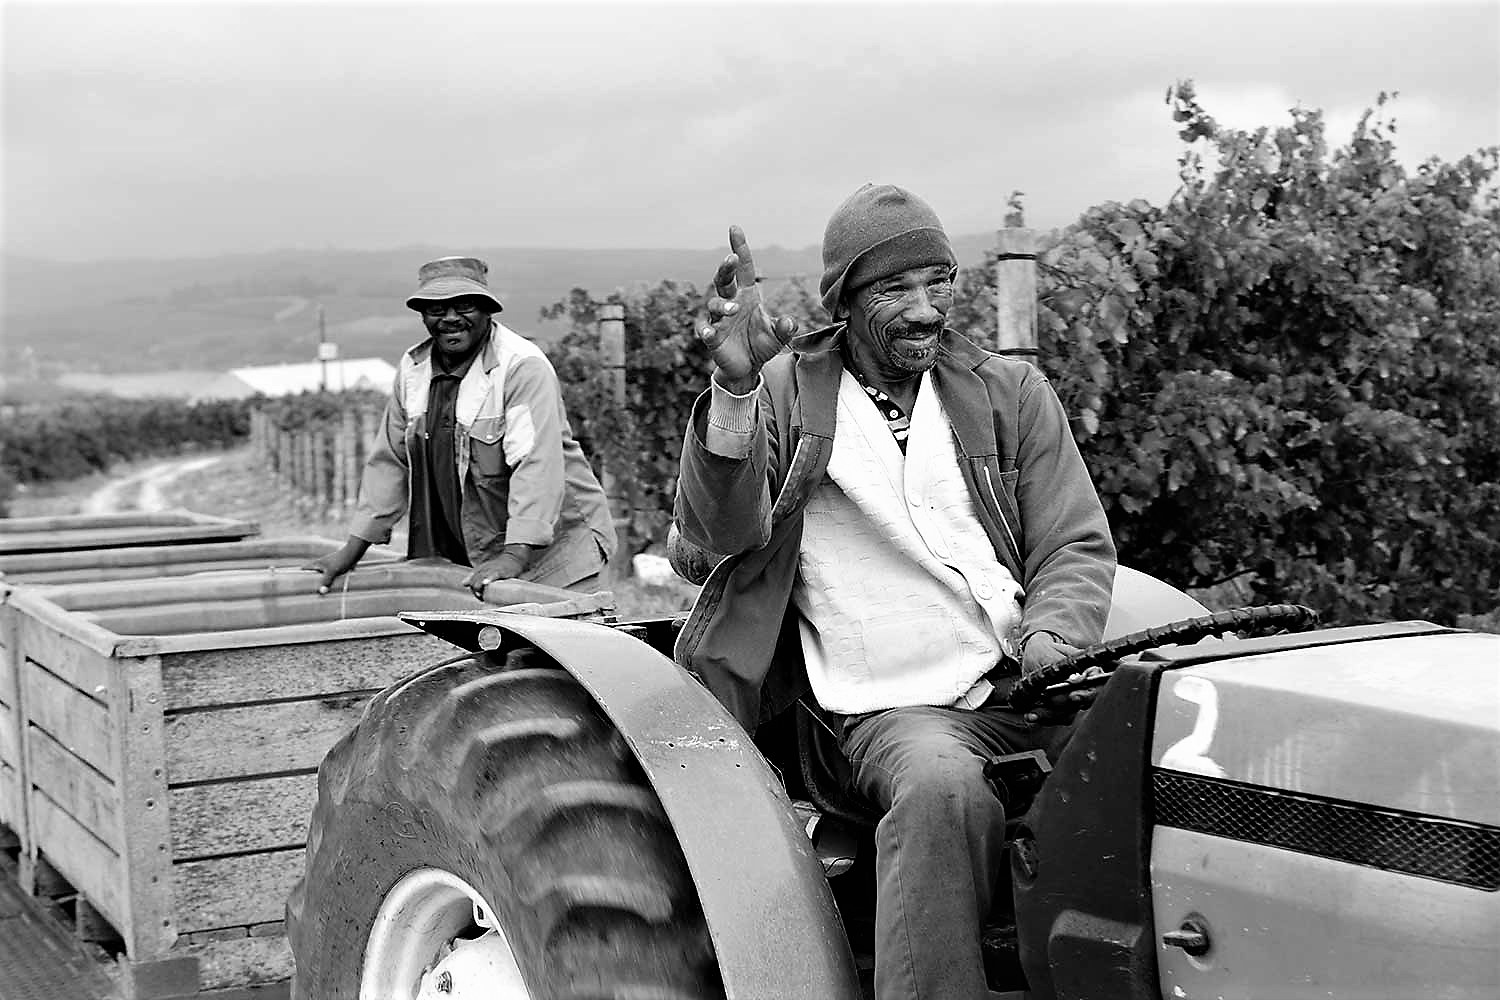 Harvest time in the Winelands